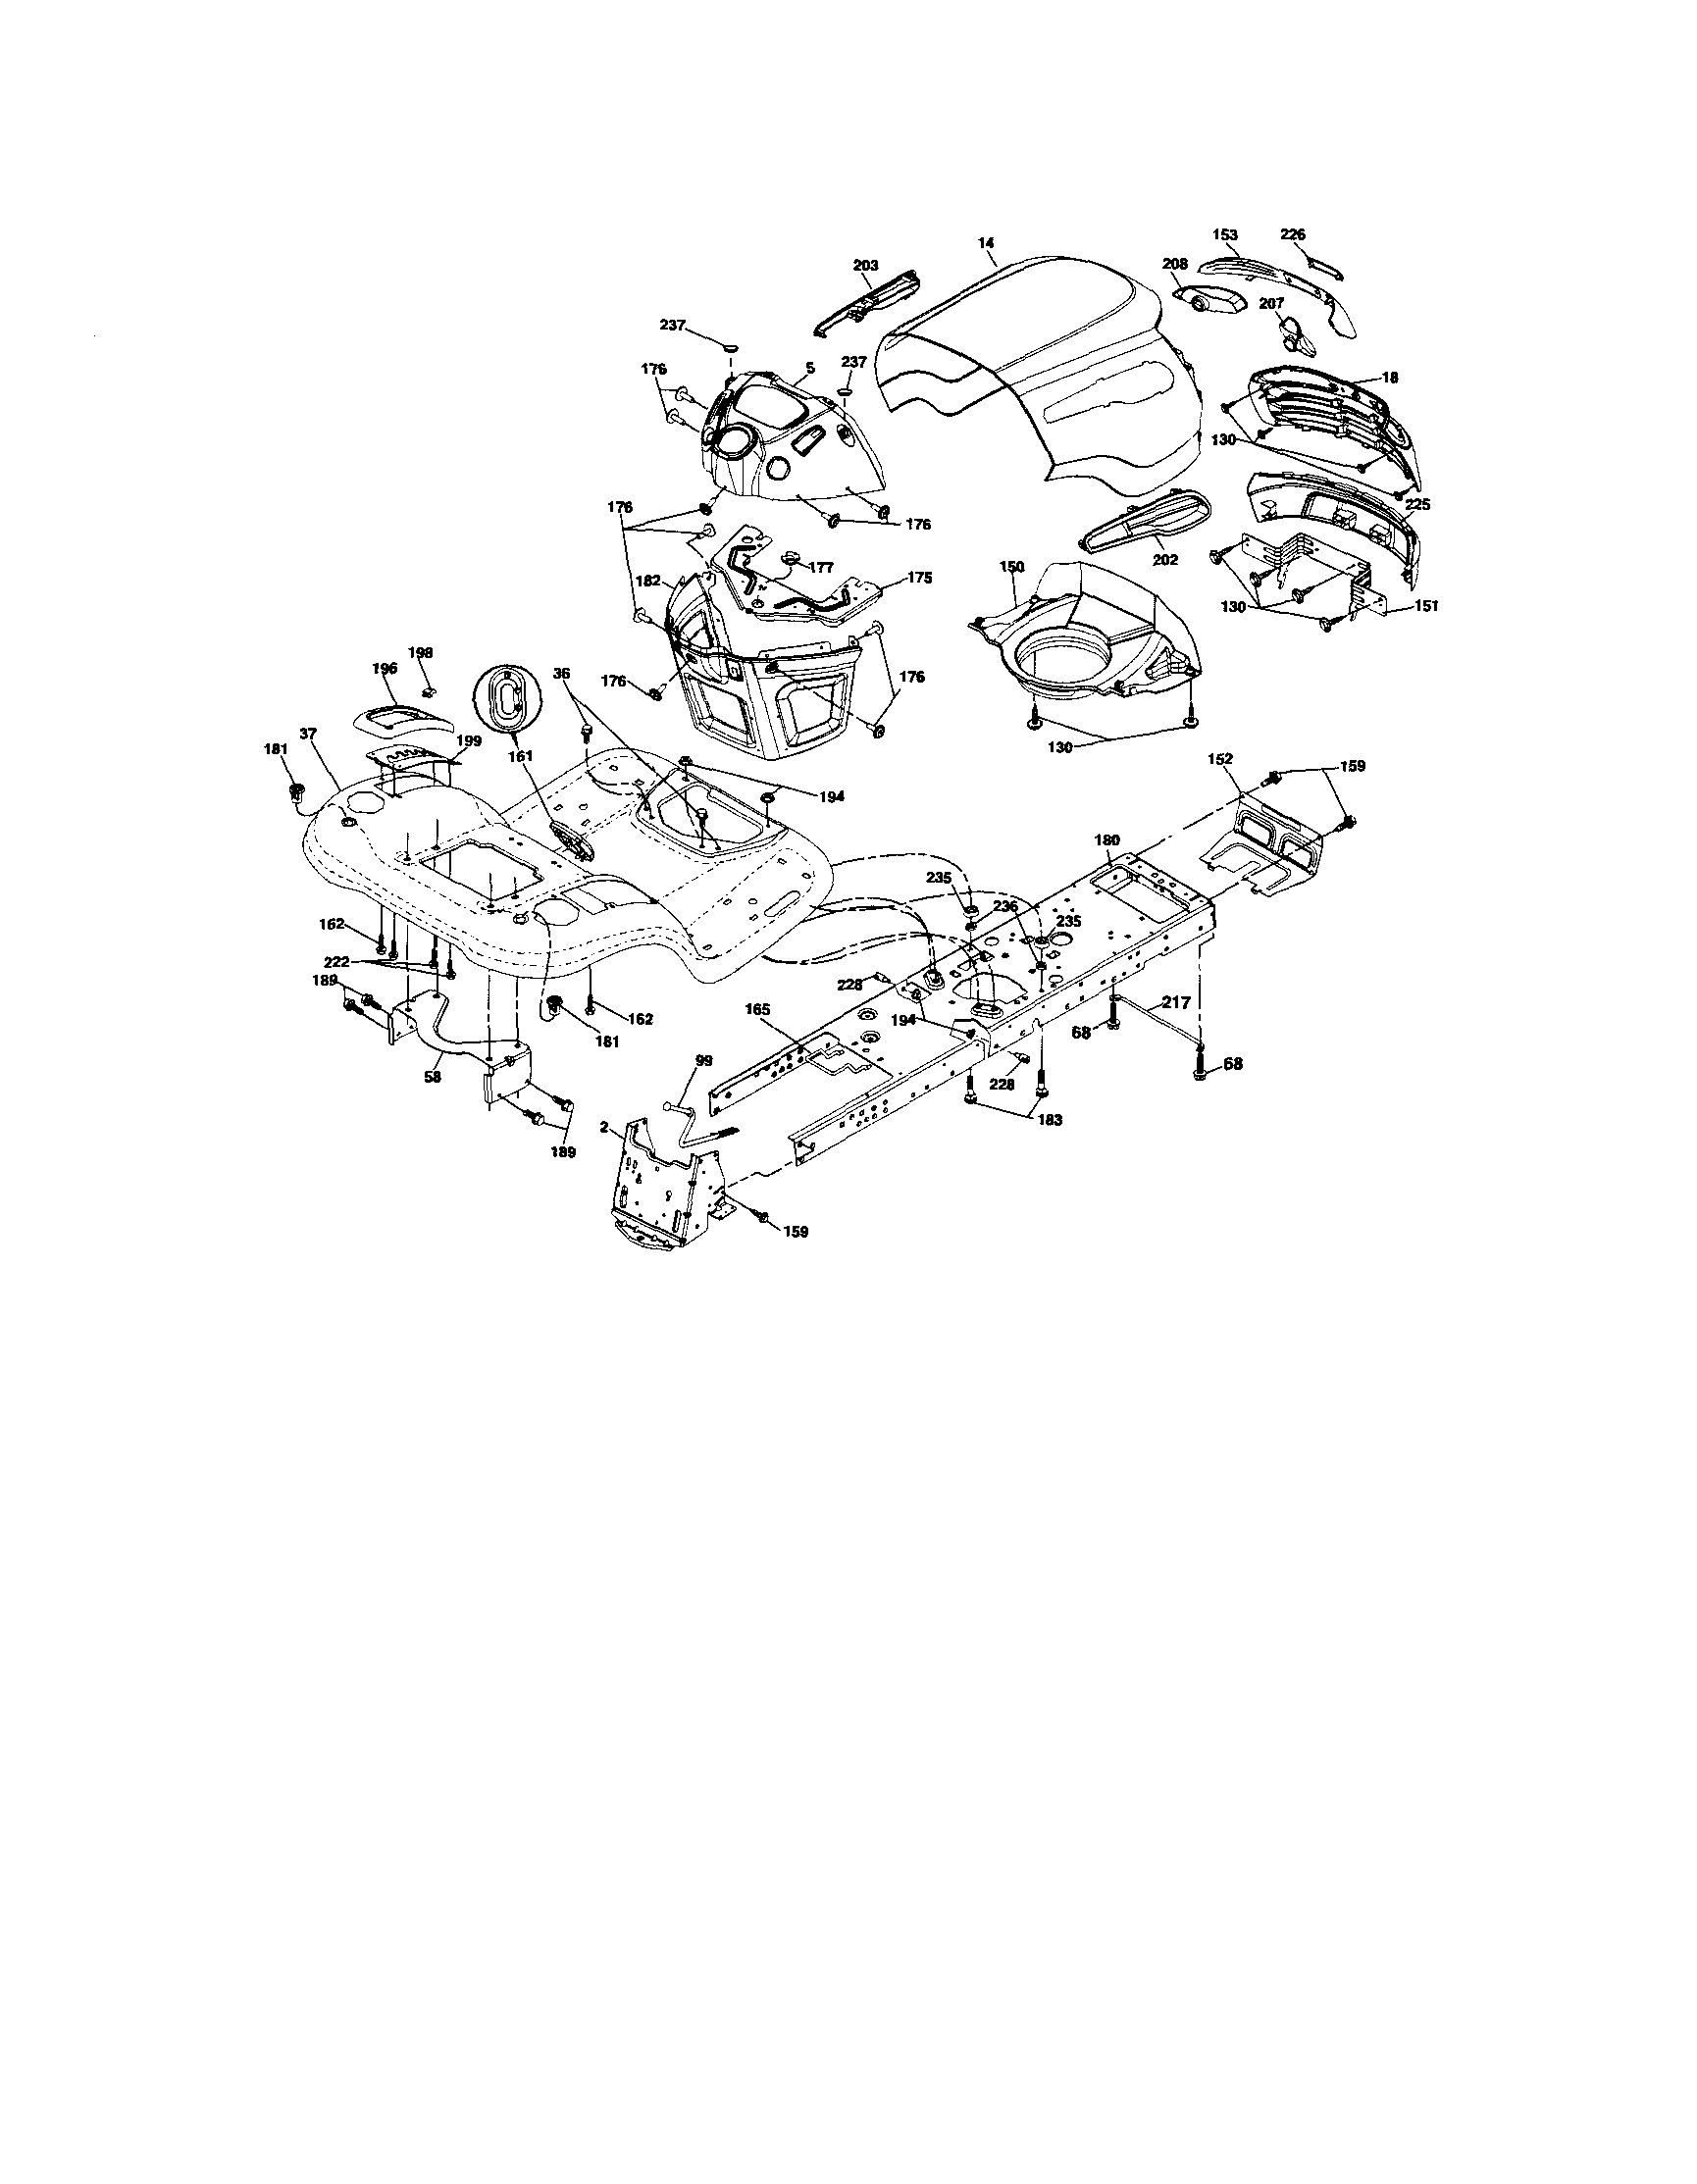 hight resolution of chassis craftsman model 917287480 lawn tractor genuine parts chassis kenworth turn signal wiring diagram